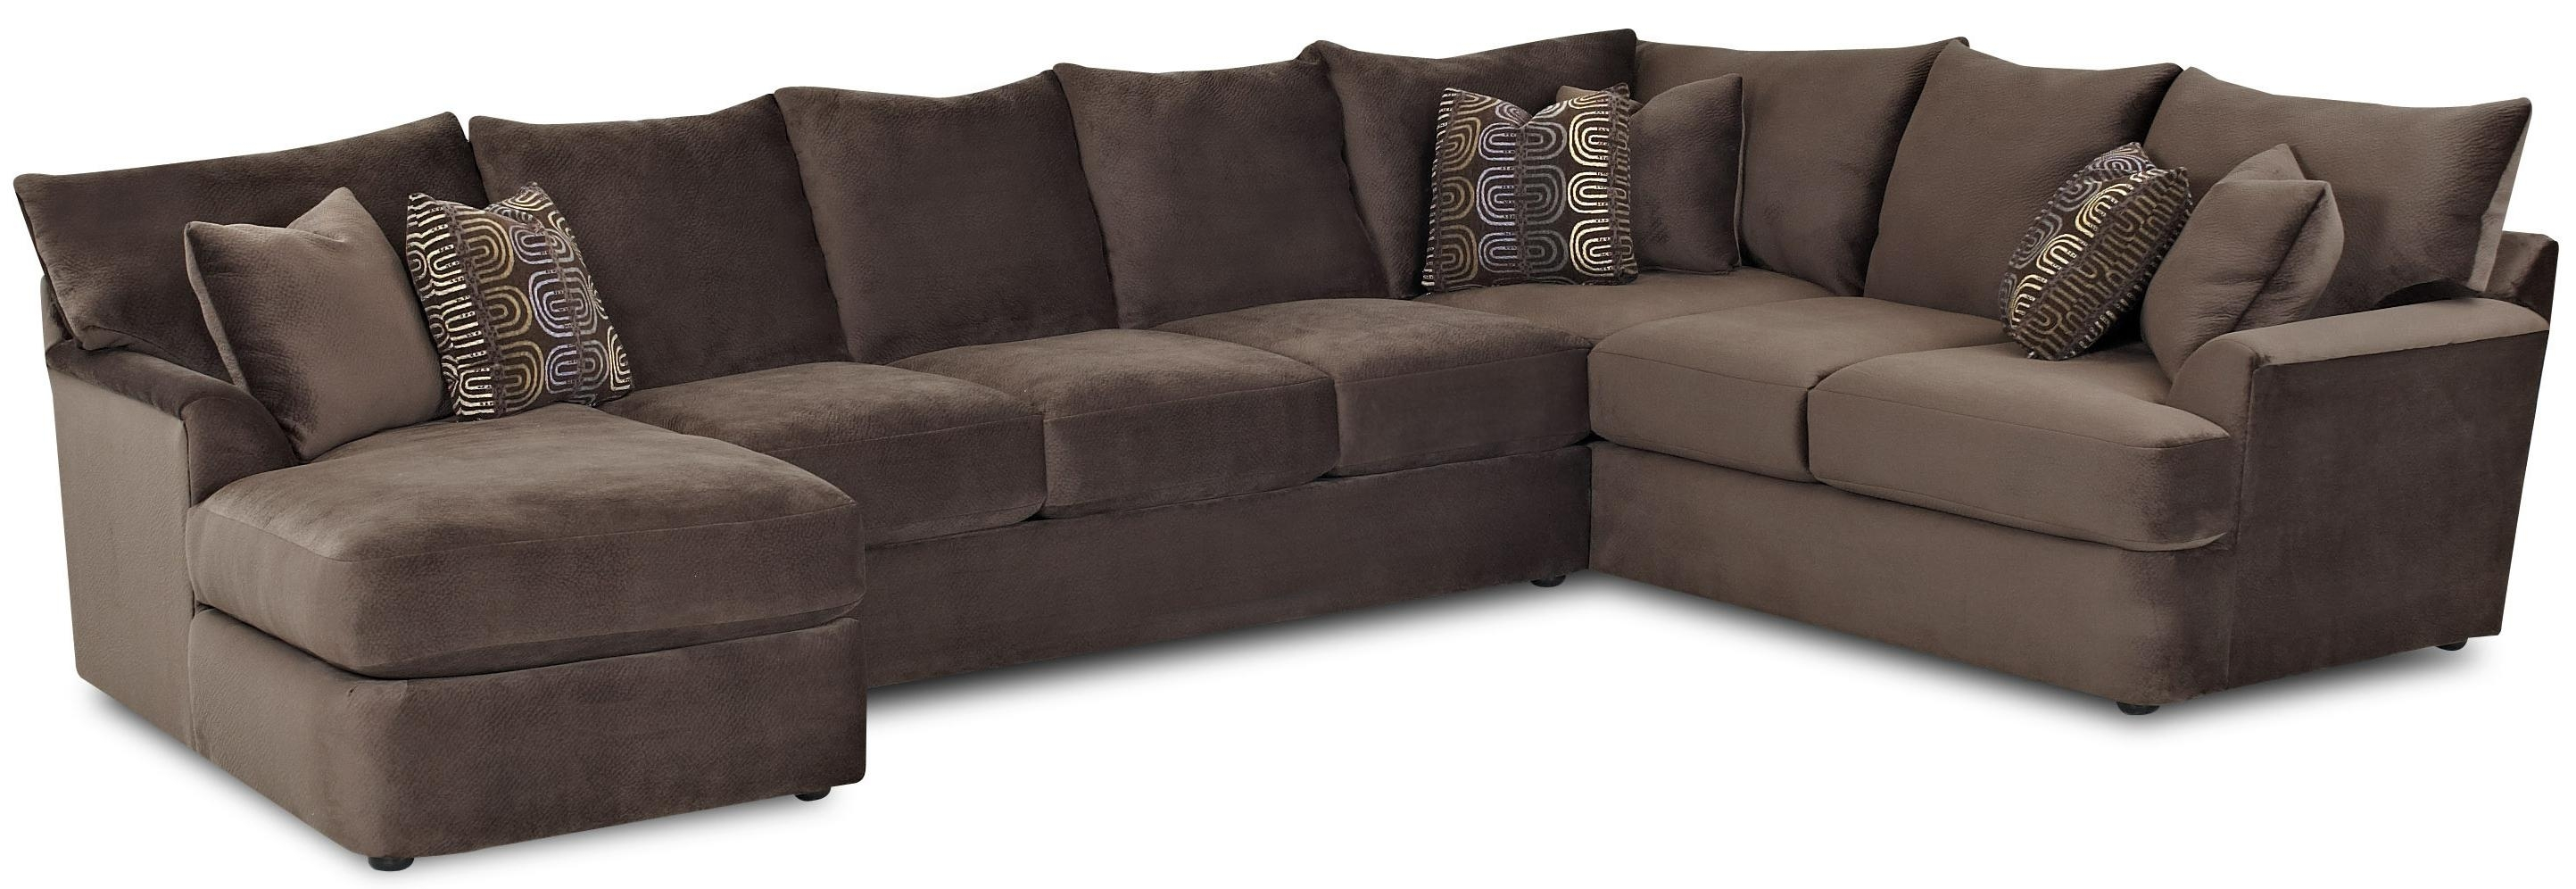 L Shaped Sectional Sofa With Left Chaiseklaussner | Wolf And Within Sectional Sofas That Can Be Rearranged (View 4 of 10)